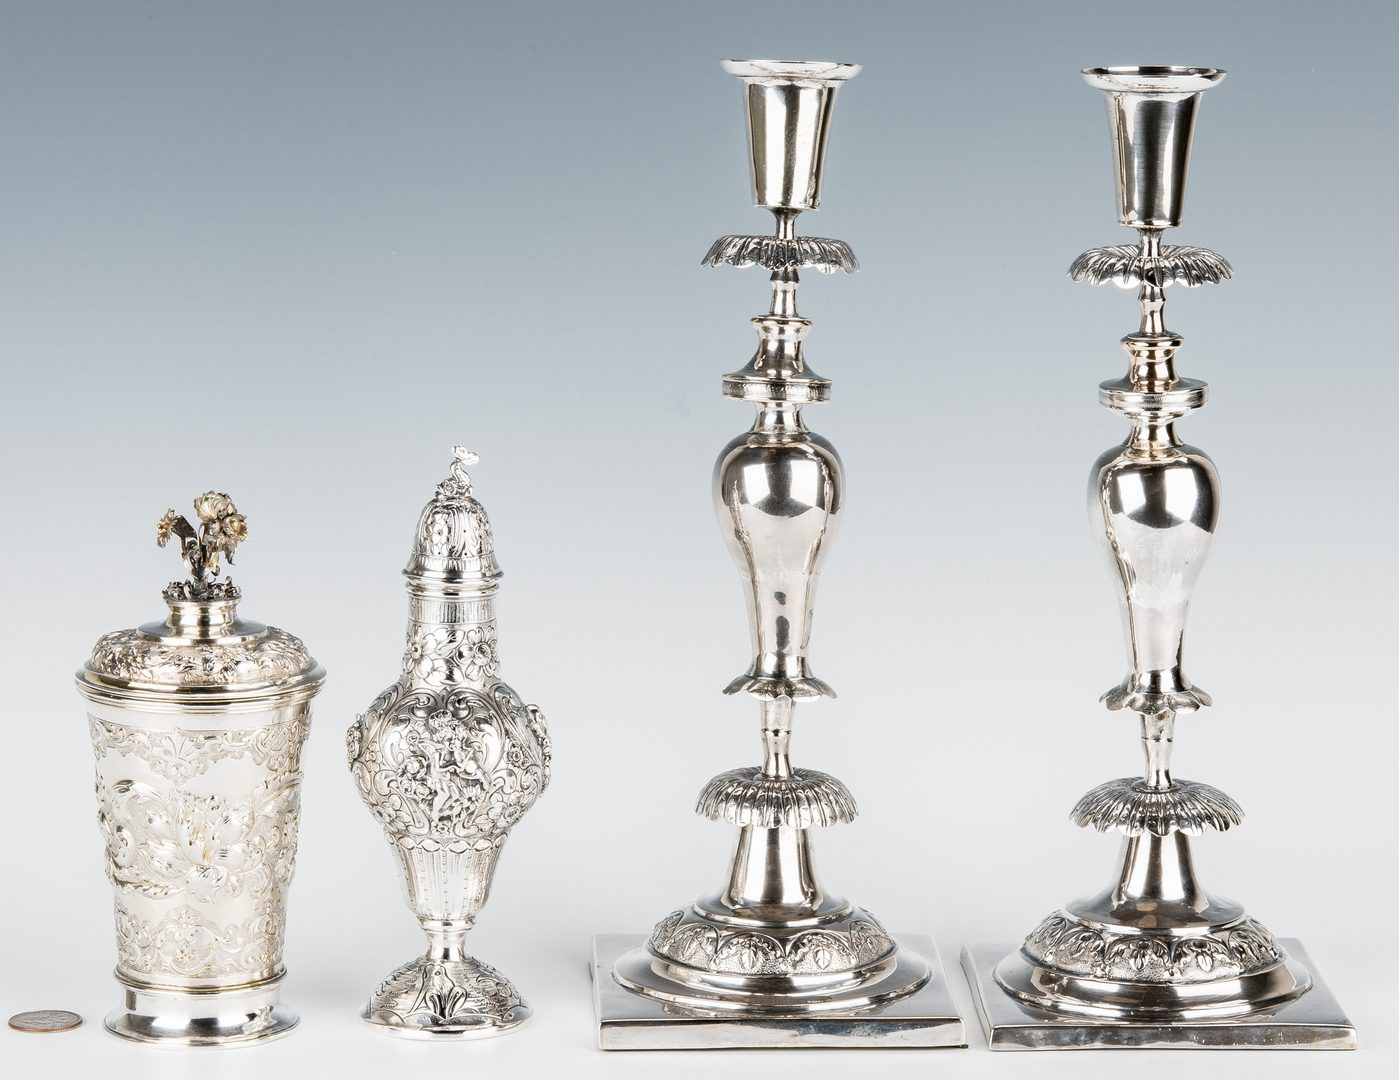 Lot 191: 4 Continental Silver items: Pair candlesticks, caster, cup and cover